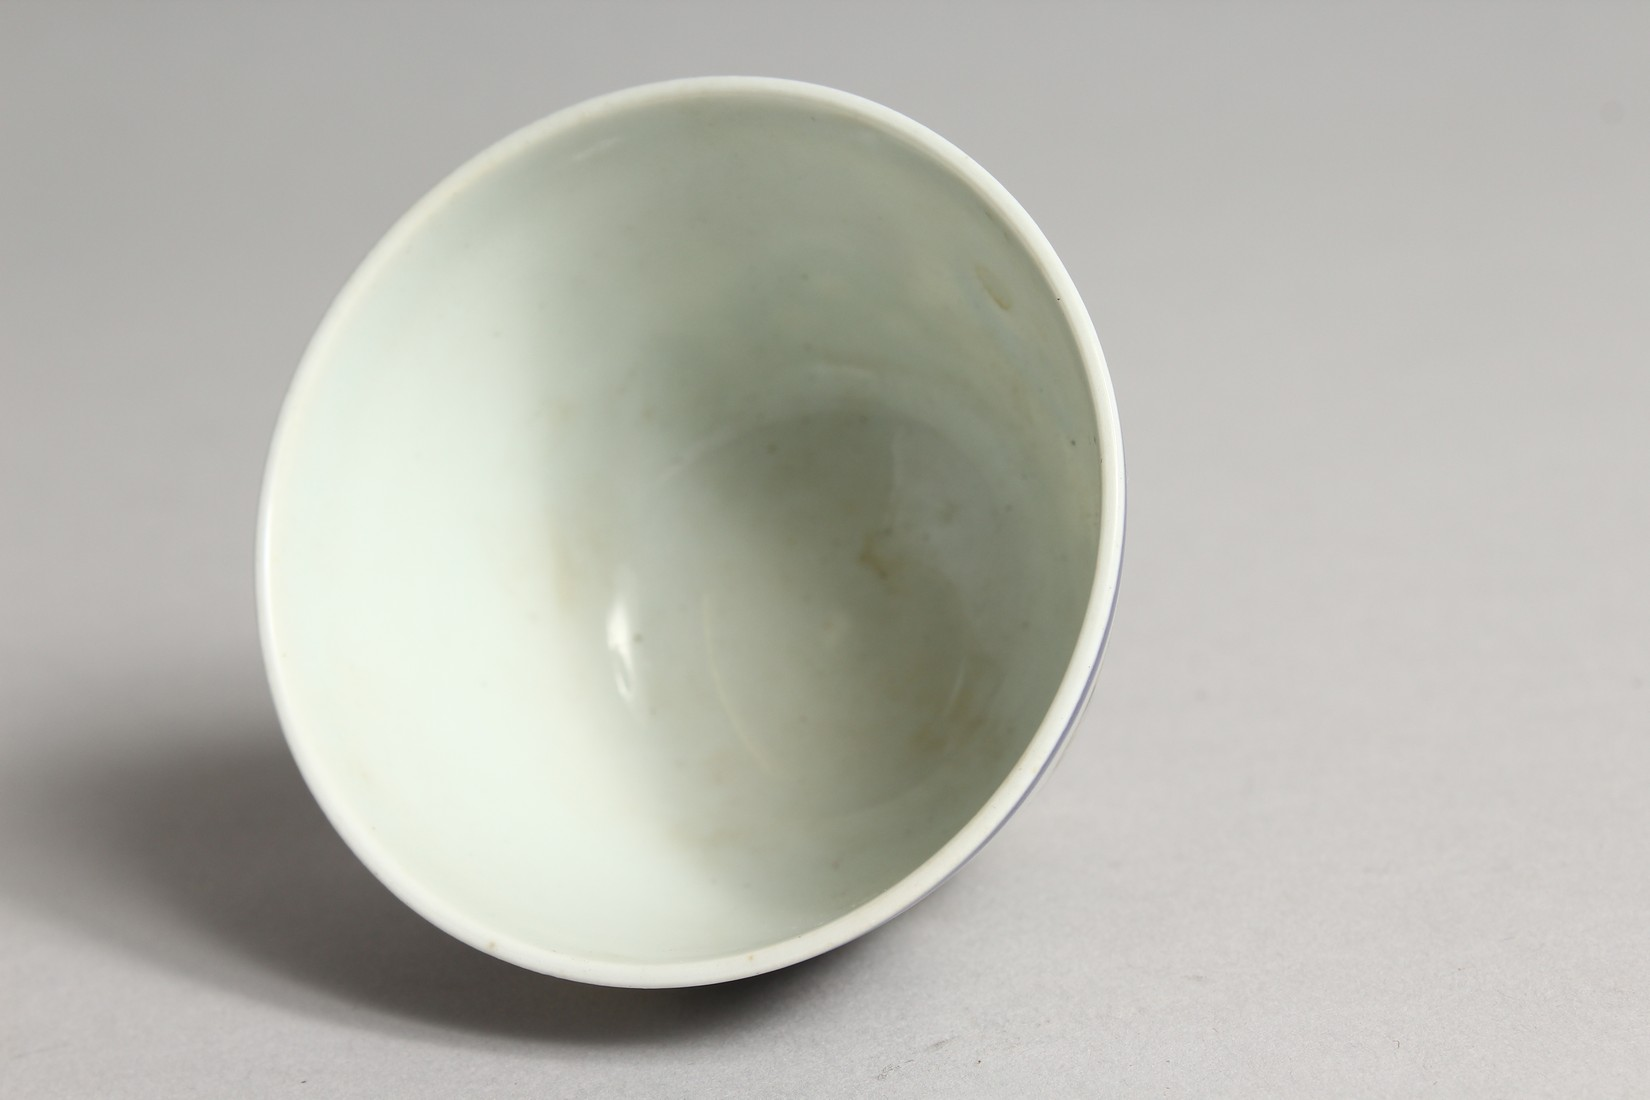 A SMALL CHINESE PORCELAIN RICE BOWL 2.75ins diameter. - Image 4 of 5